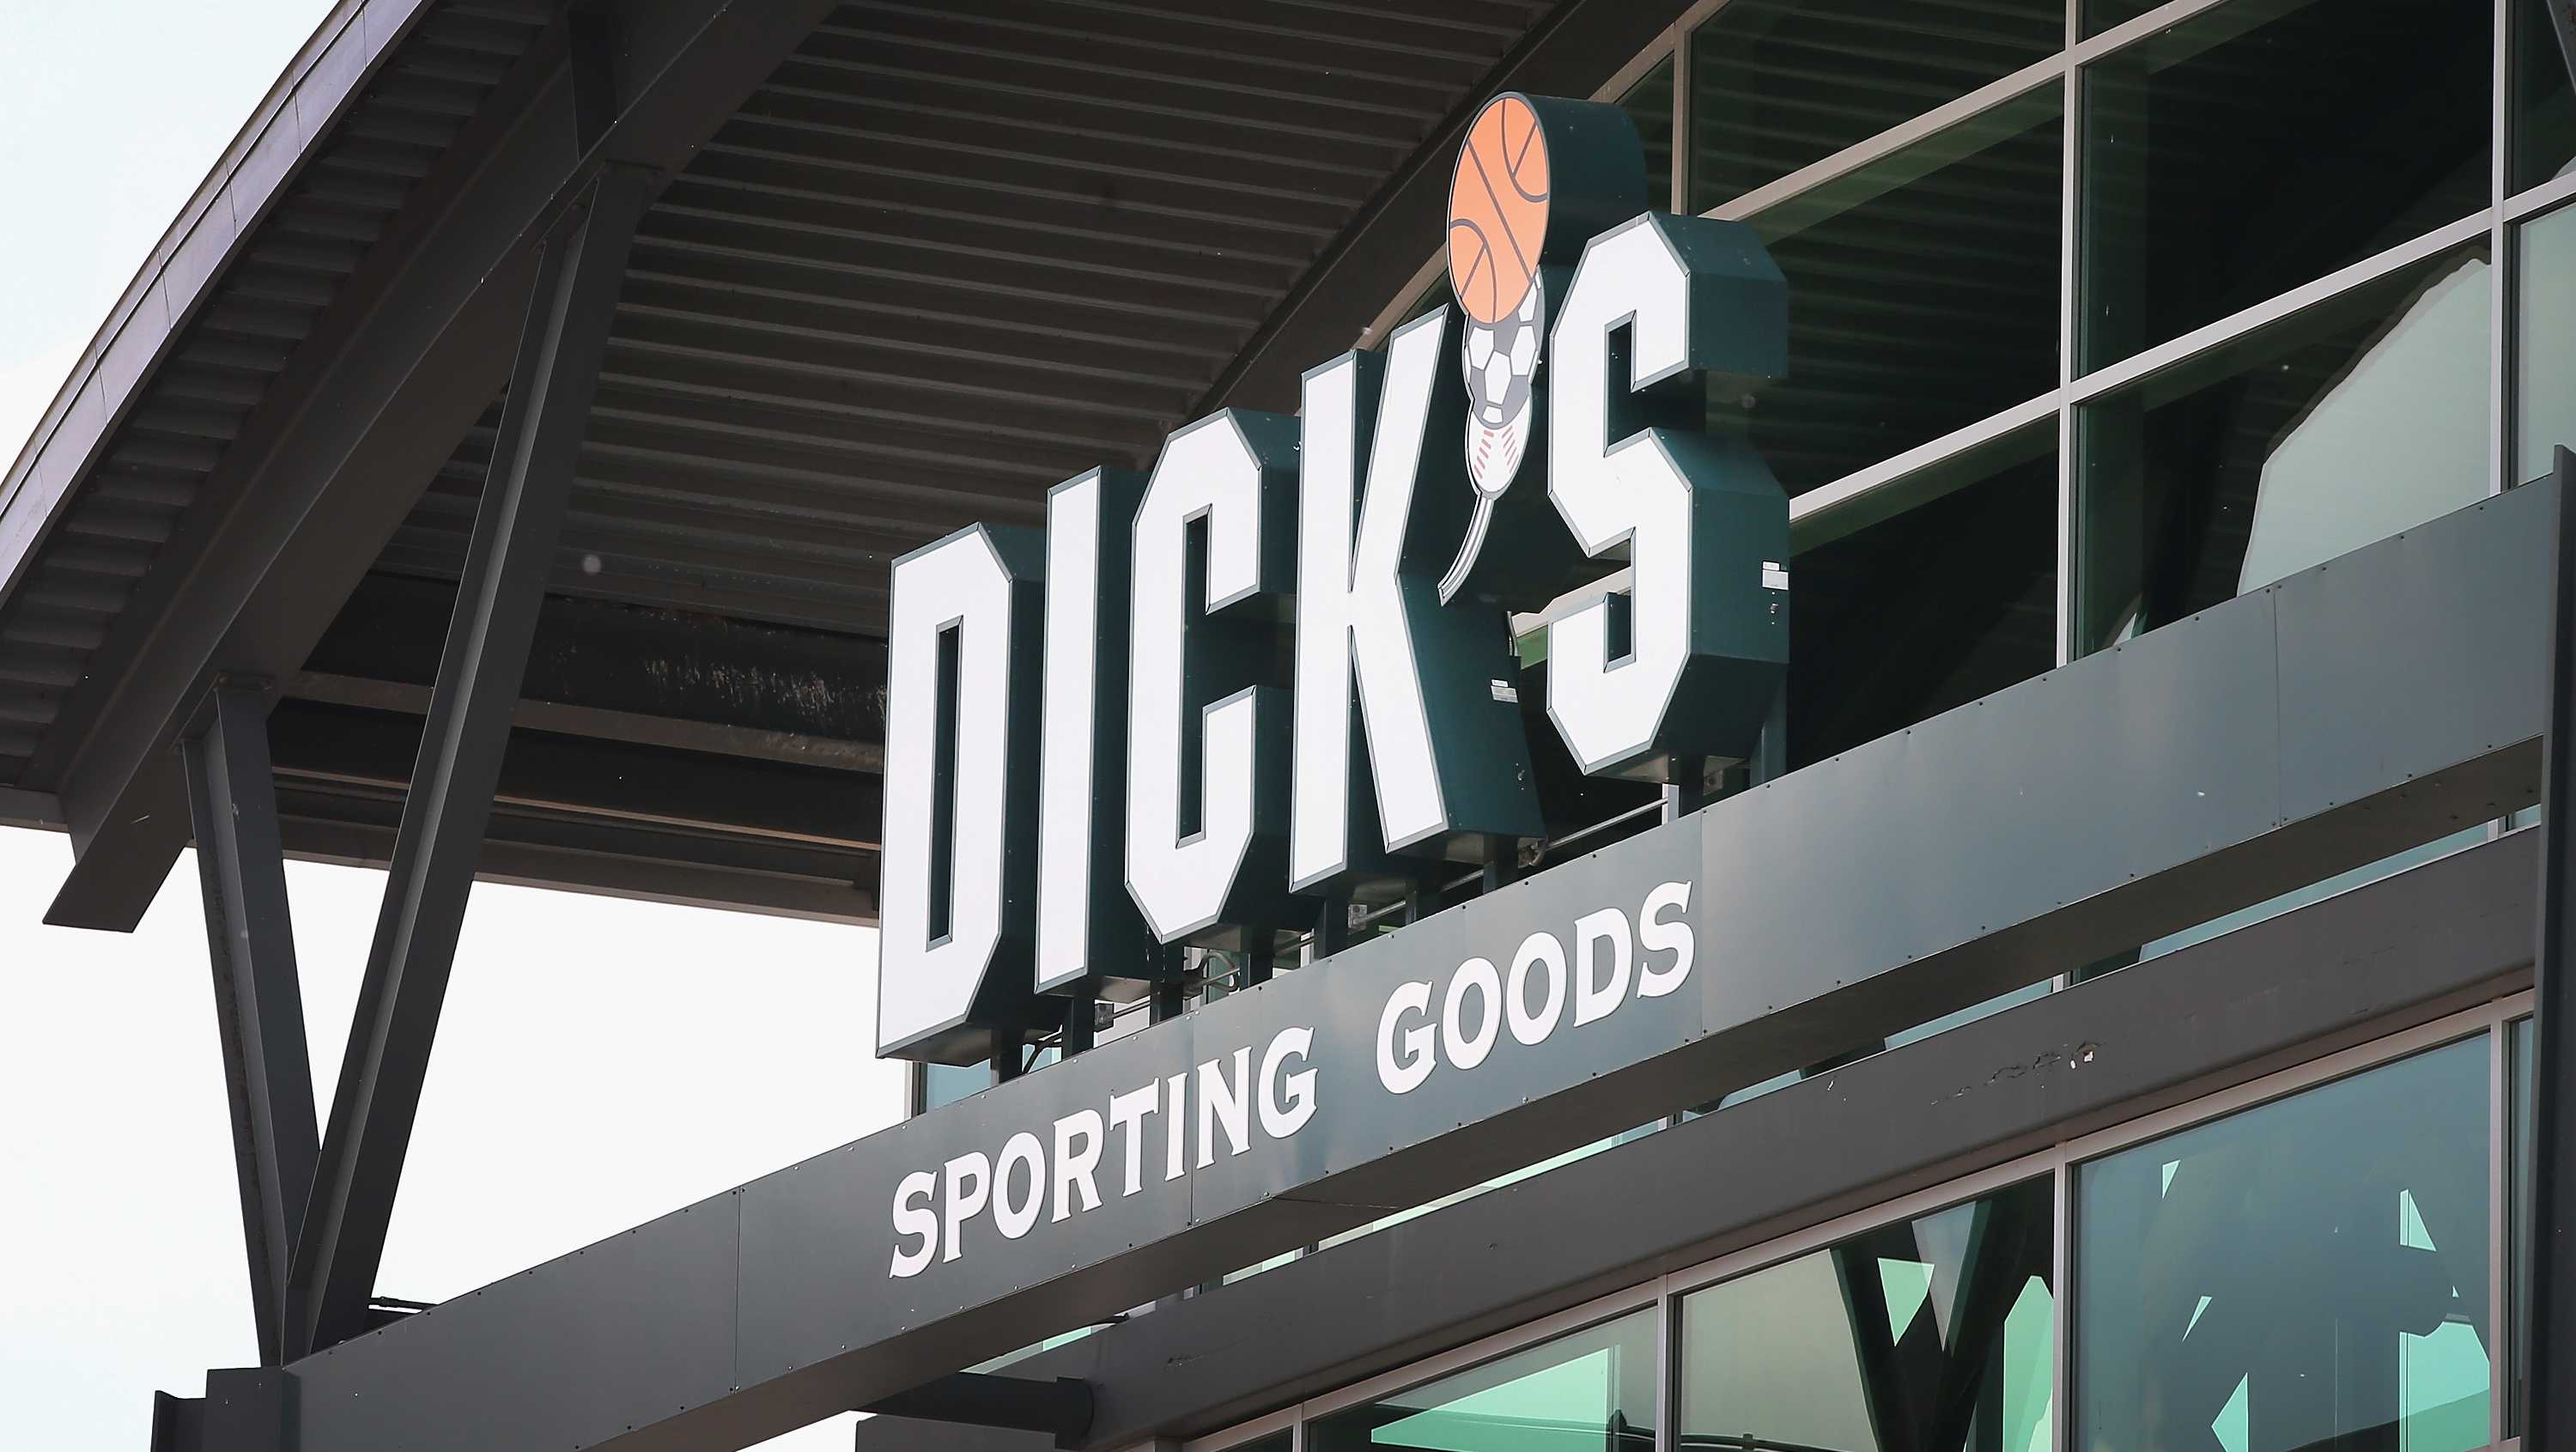 A sign with the company logo hangs above the entrance of a Dick's Sporting Goods store on May 20, 2014 in Niles, Illinois. Dicks Sporting Goods stock price plummeted more than 17% during mid-day trading today following a weaker than expected earnings announcement.